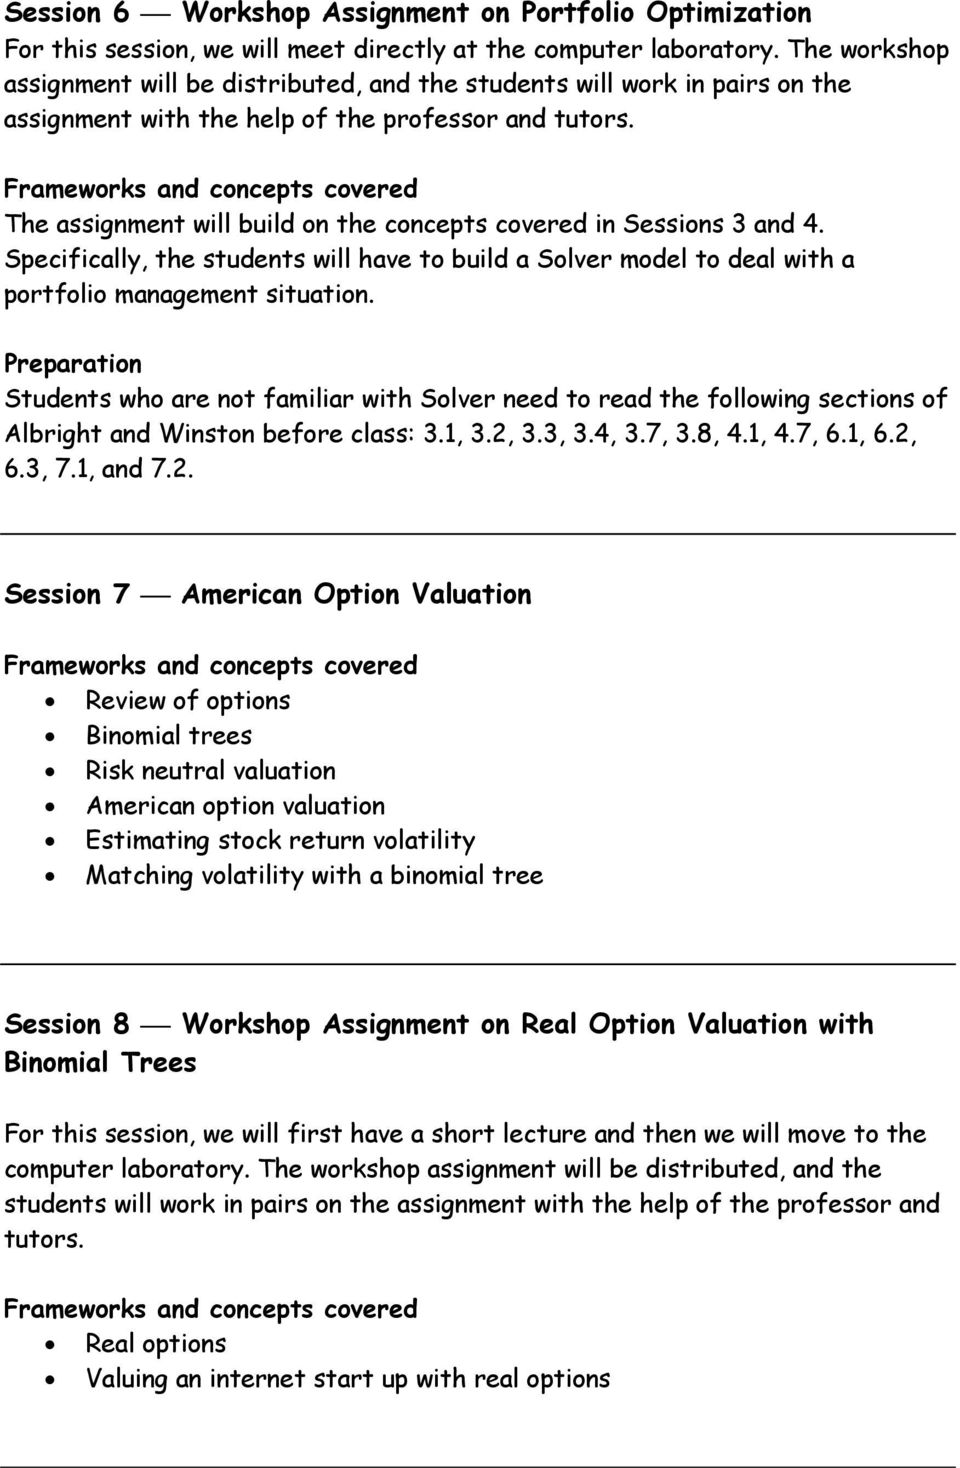 The assignment will build on the concepts covered in Sessions 3 and 4. Specifically, the students will have to build a Solver model to deal with a portfolio management situation.